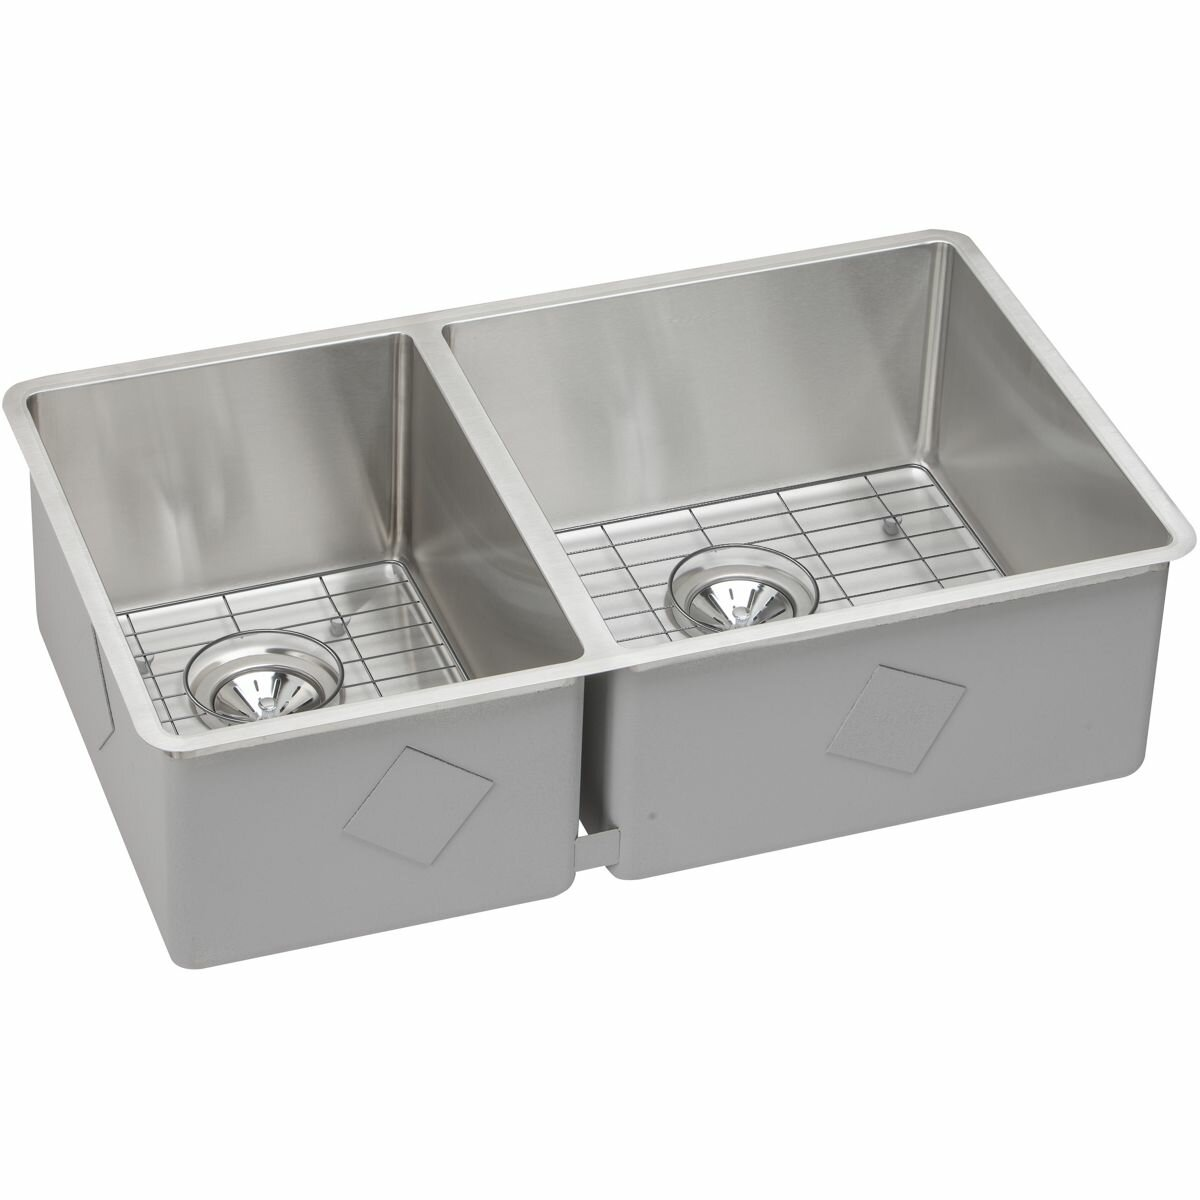 kitchen sinks stainless steel double bowl elkay crosstown 31 5 quot x 18 5 quot stainless steel bowl 9592